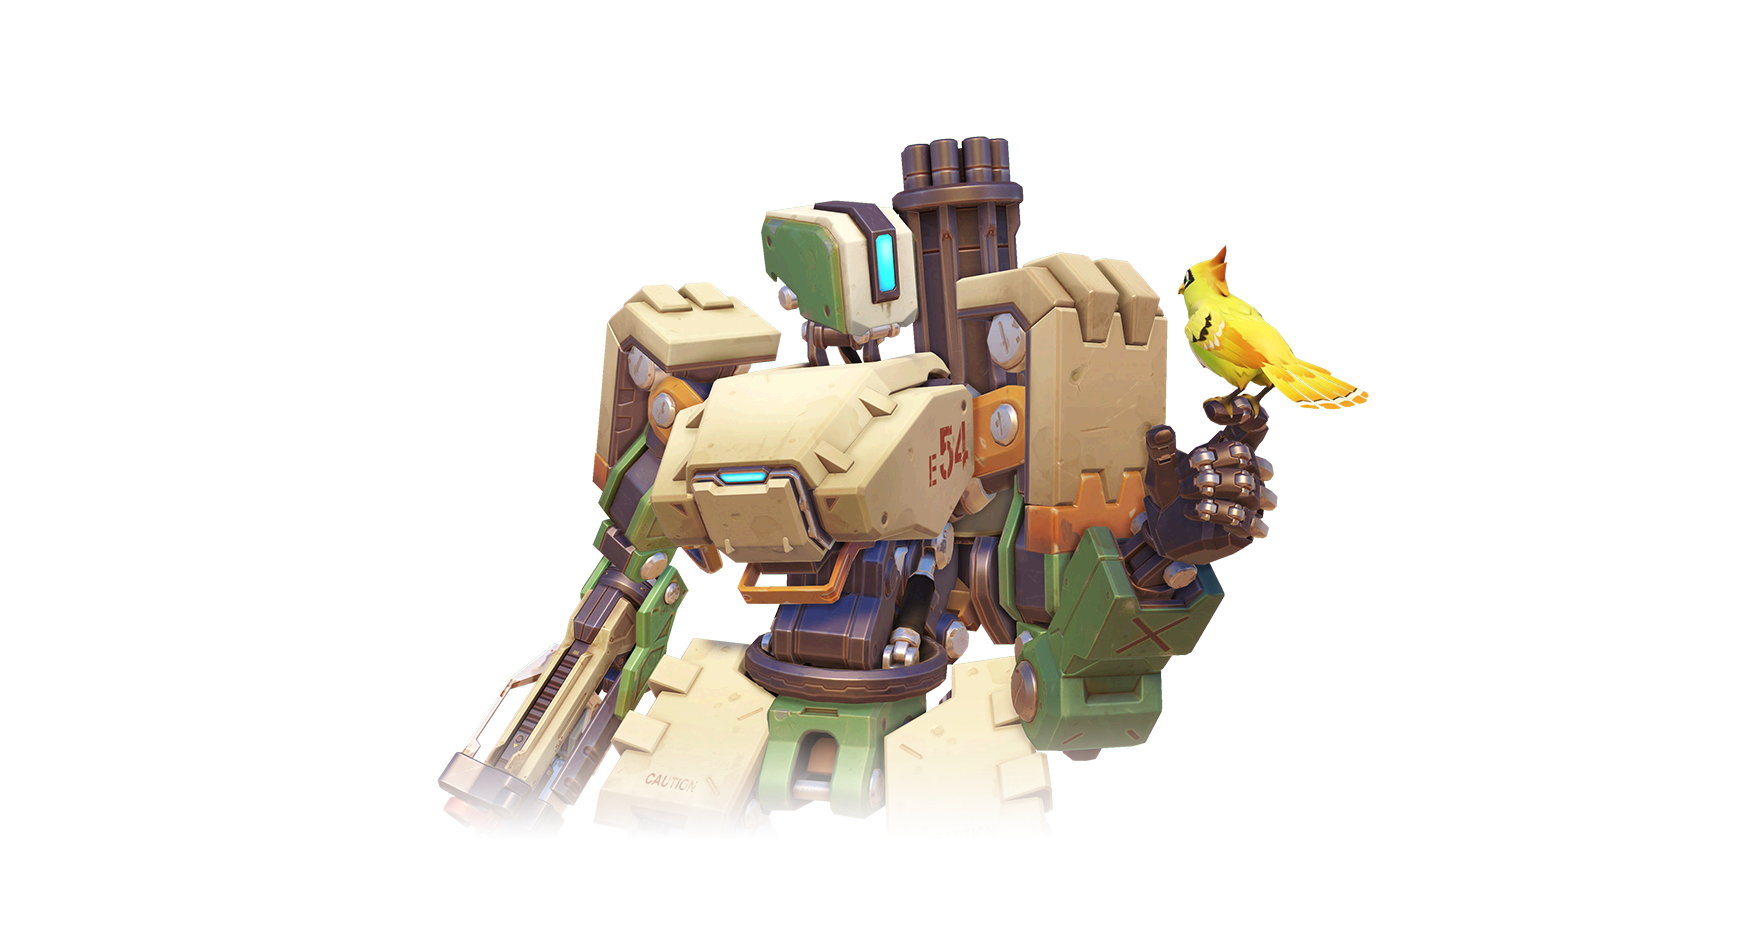 Datei:Bastion.png